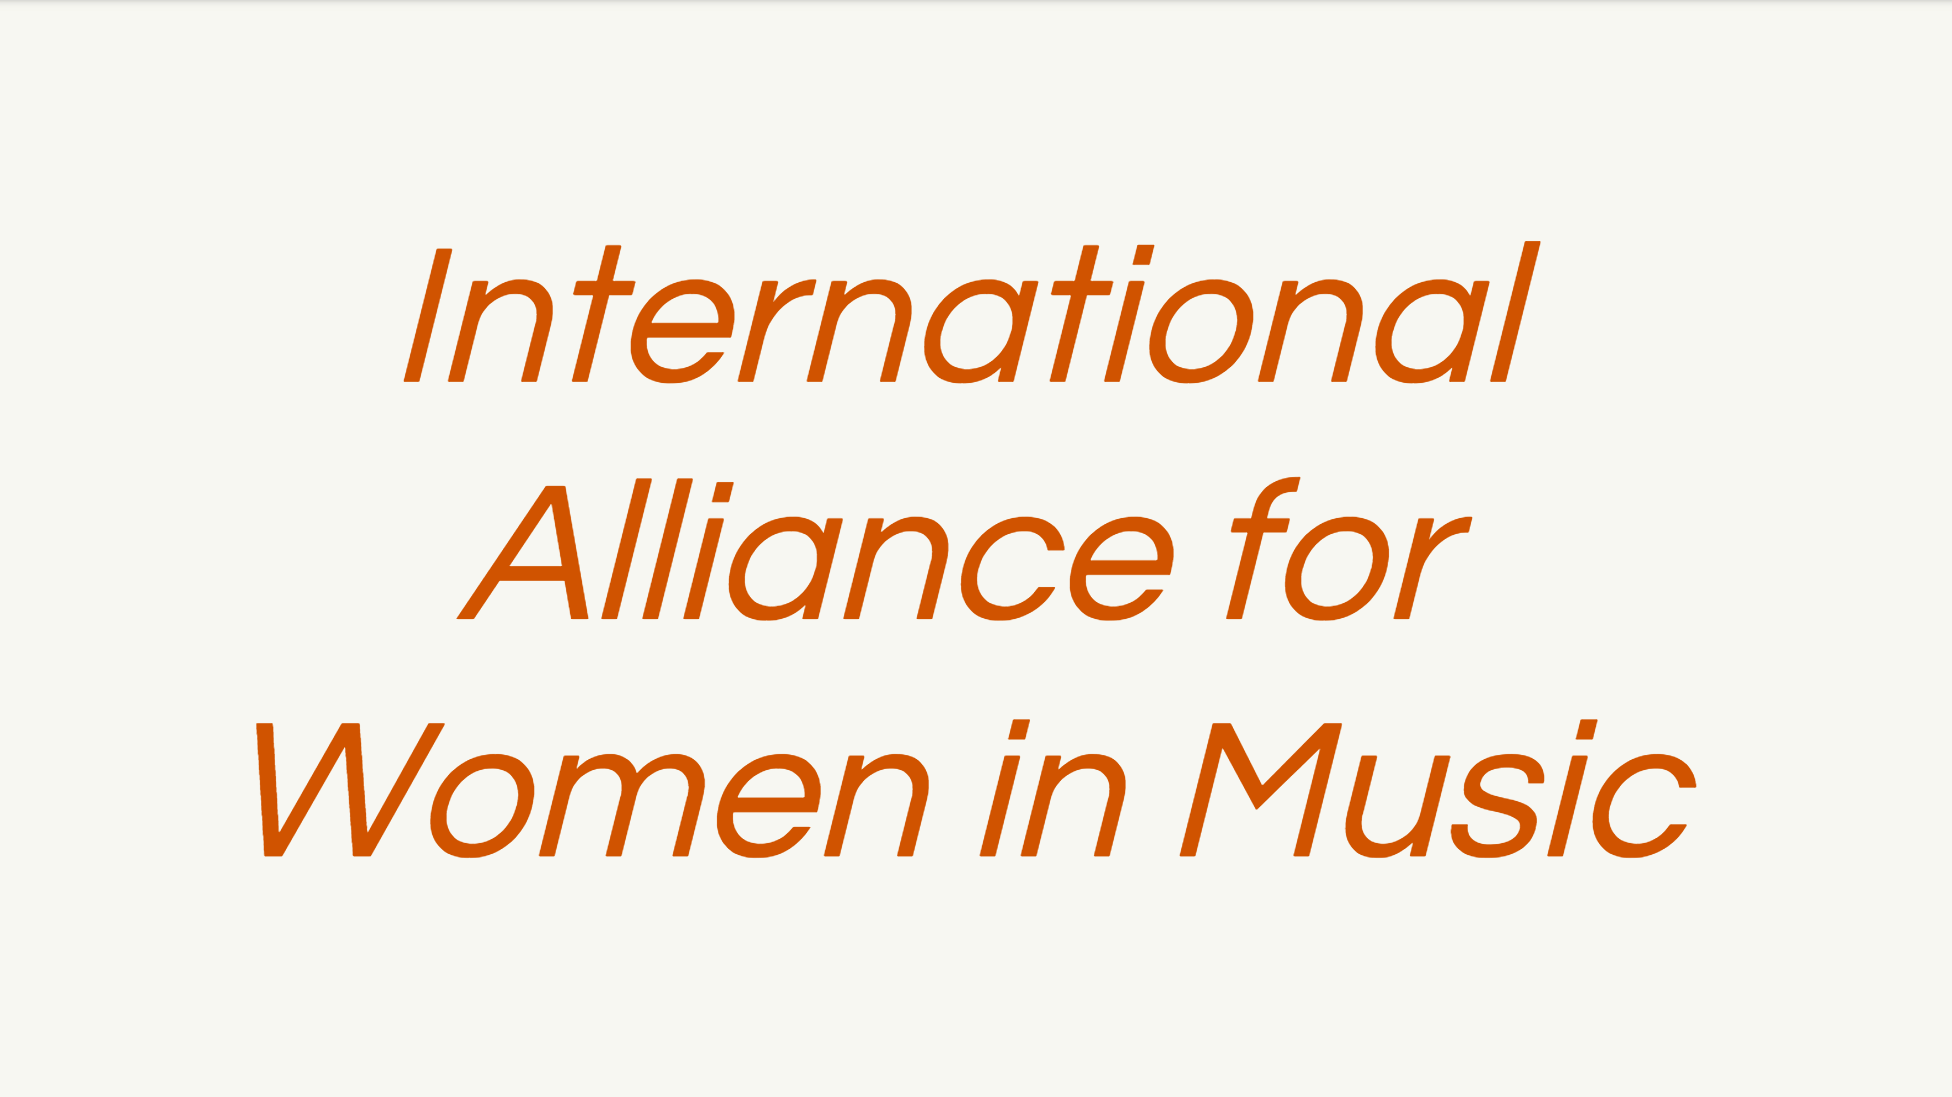 IAWM was formed in 1995 and is currently headed by president Carrie Leigh Page. The organization is dedicated to fostering and encouraging the activities of women in music, particularly in the areas of musical activity such as composing, performing, and research in which gender discrimination is an historic and ongoing concern.